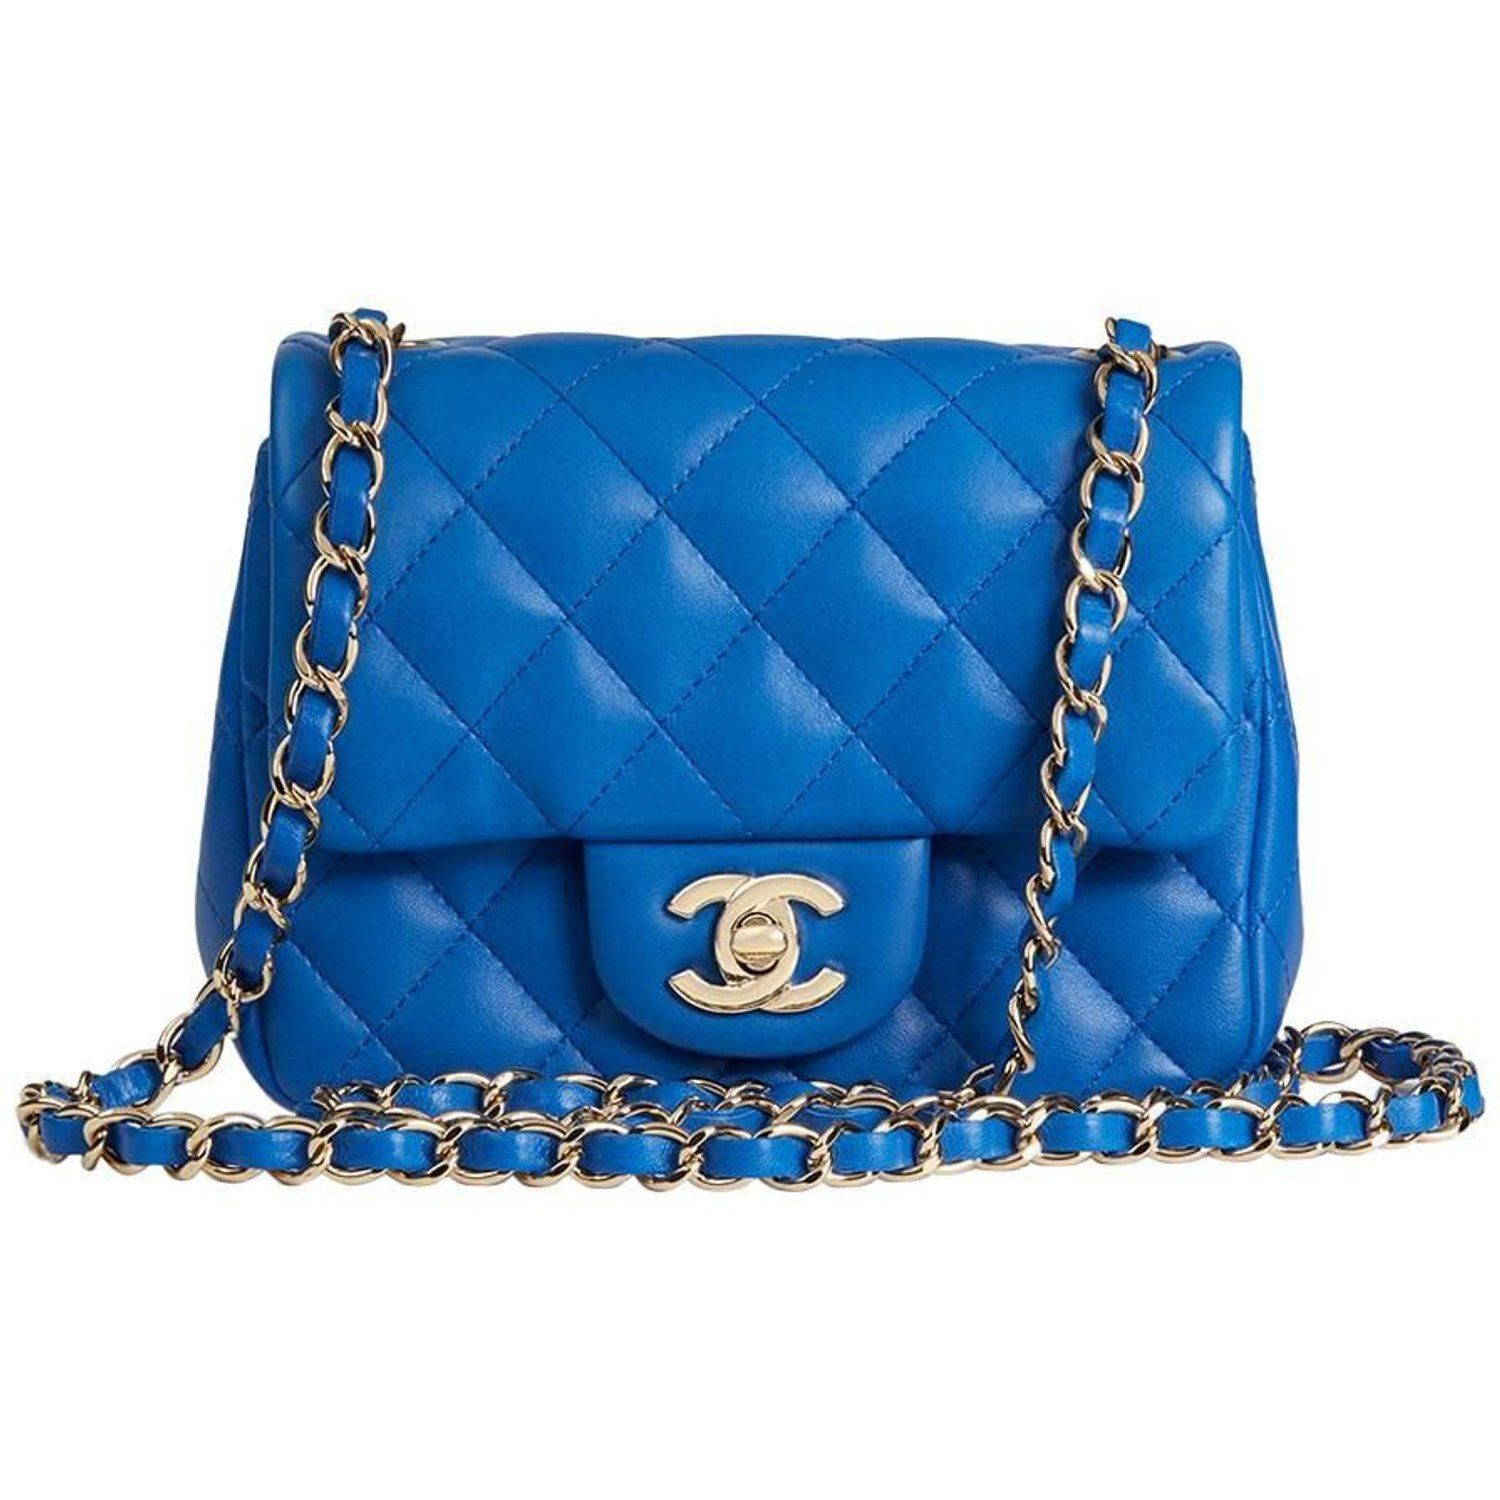 f21cd4b1b821 Chanel Blue Quilted Lambskin Mini Flap Bag For Sale at 1stdibs